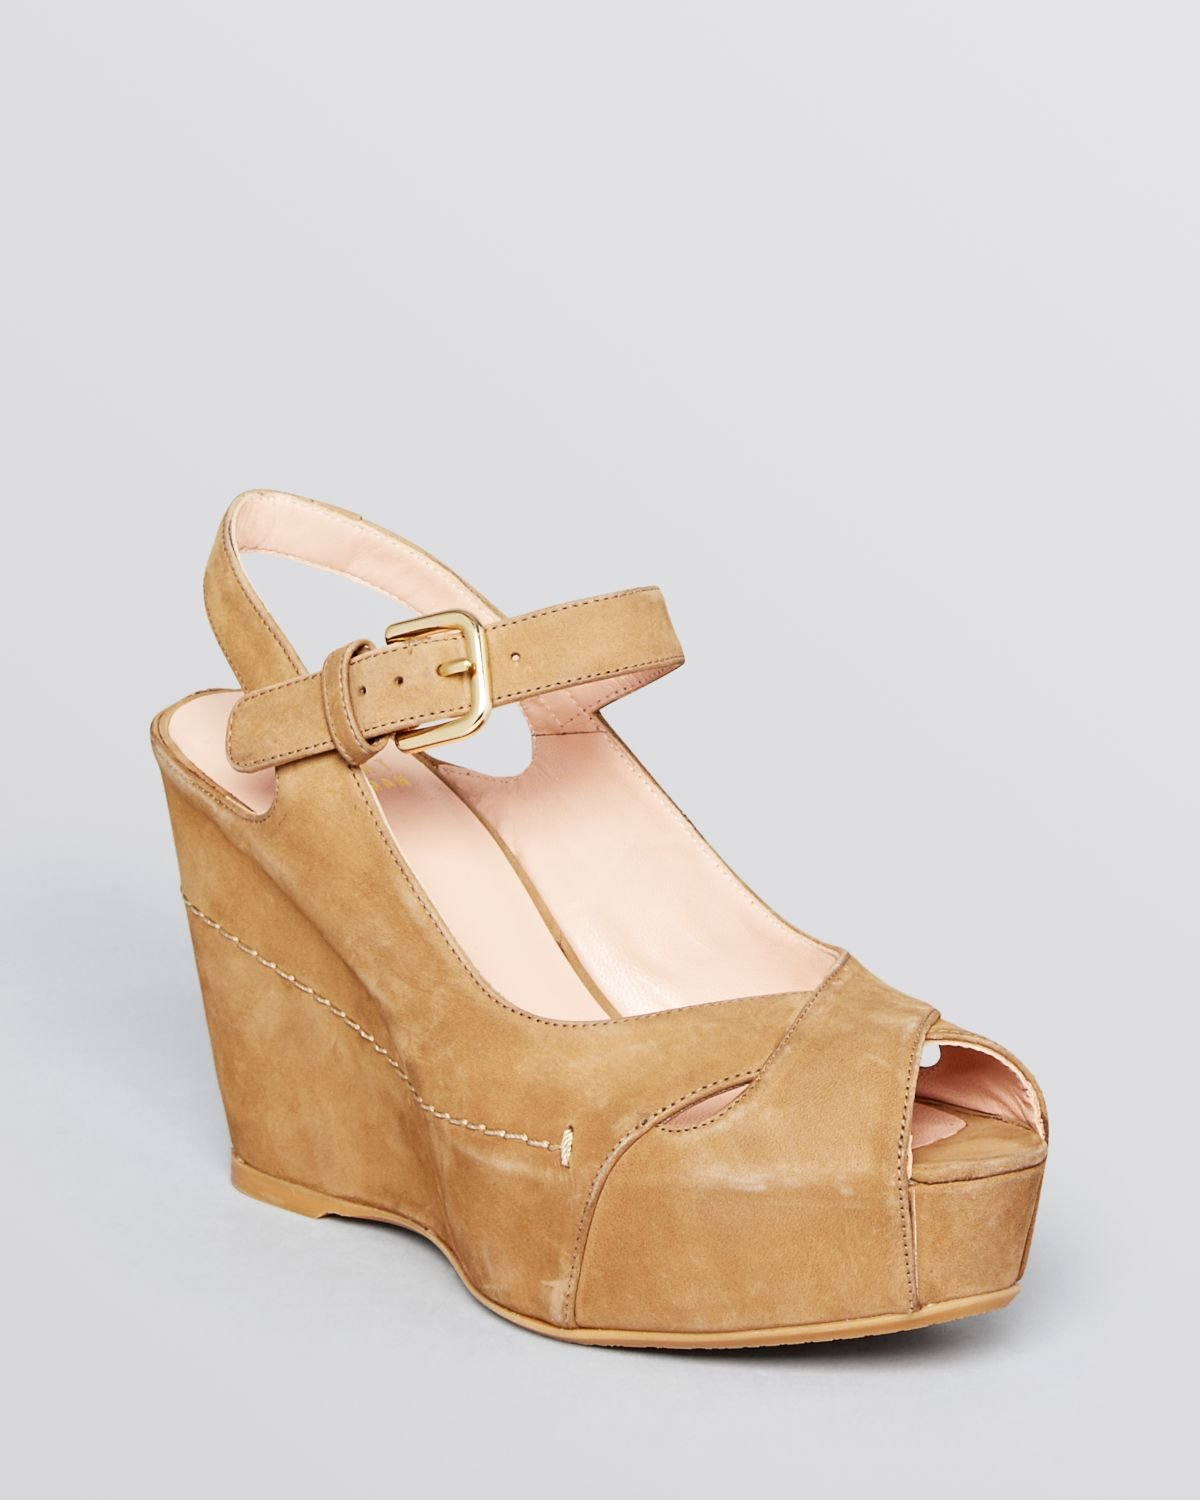 purchase sale online outlet cheapest price Stuart Weitzman open-toe sandals cheap sale prices cheap recommend fIMqIuGHf3